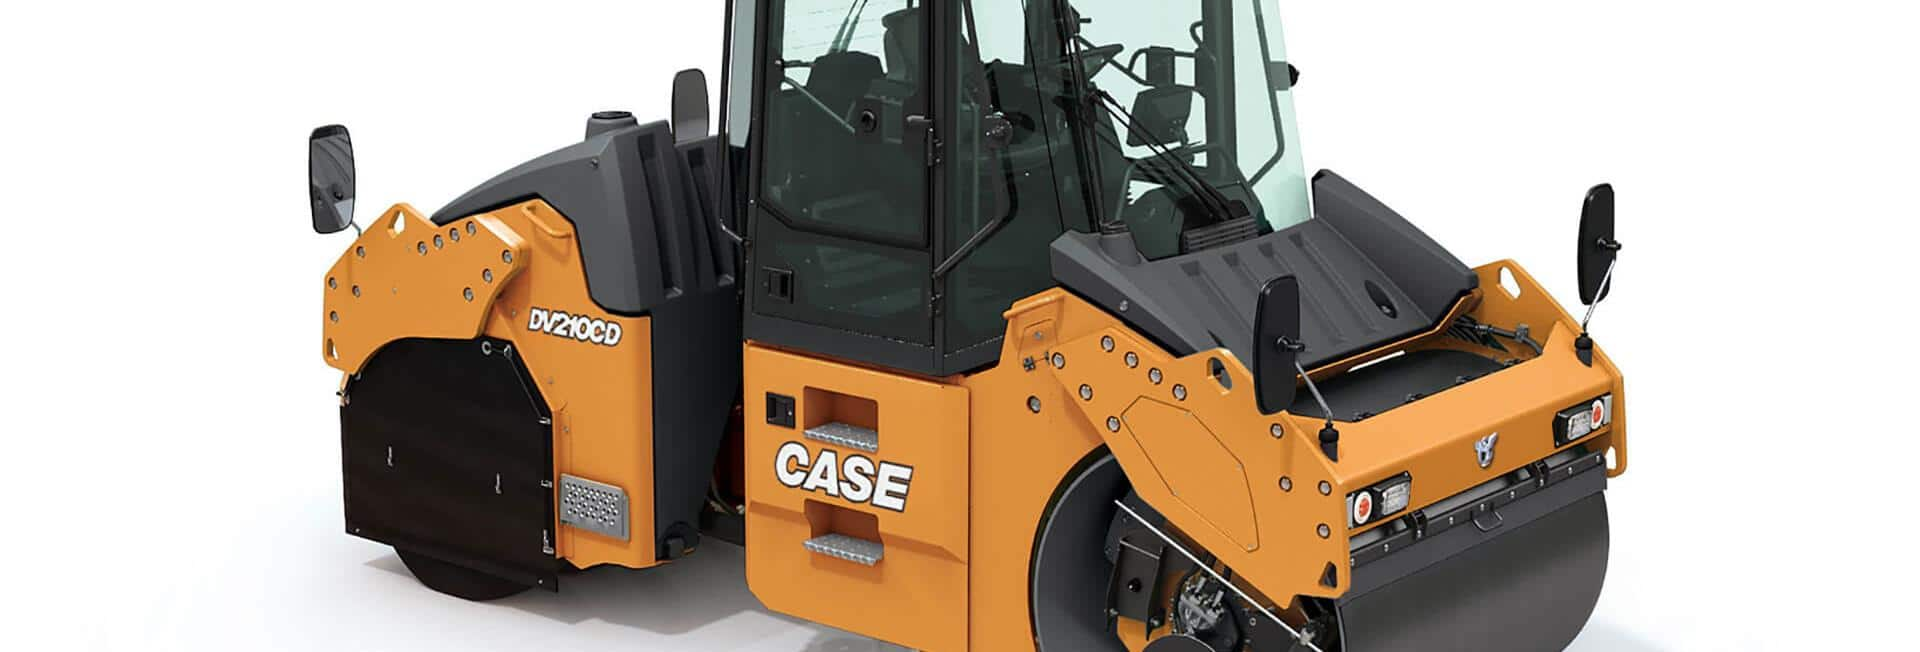 https://assets.cnhindustrial.com/casece/nafta/assets/Products/Compaction-Equipment/Double-Drum-Rollers/DV210CD_ARX_110K_T4i_Heavy_Tandem_Roller__22.jpg?Width=800&Height=450